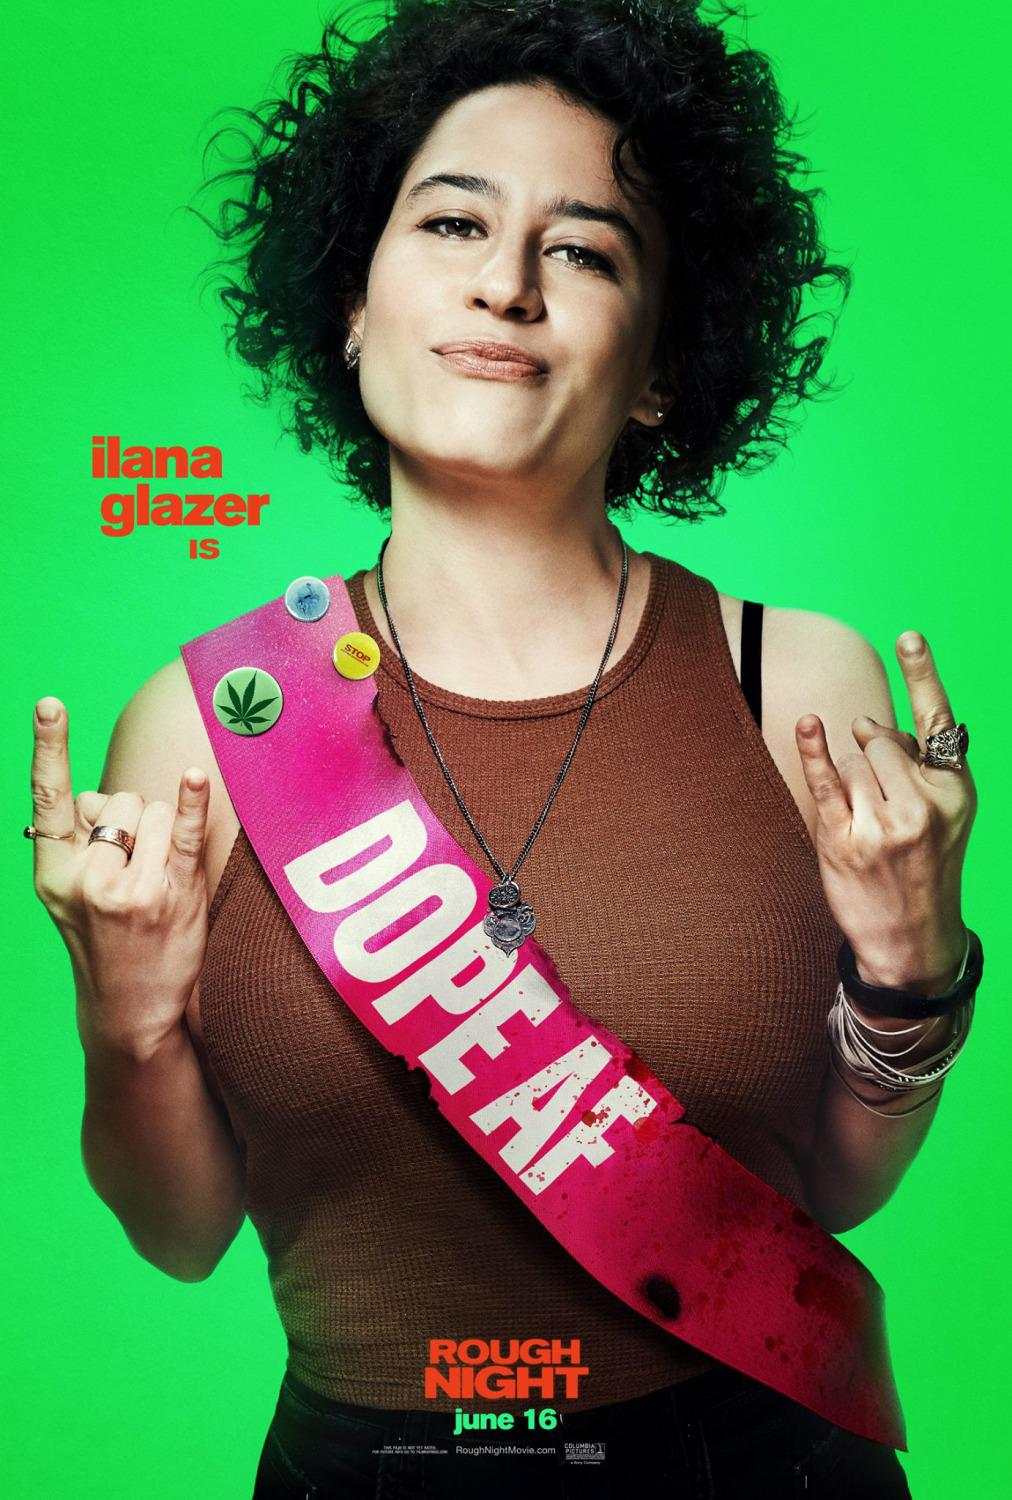 Crazy Night - Festa col morto - Rough Night - Girls Night Out - Pire Soirée - Noche fuera Control - Ilana Glazer